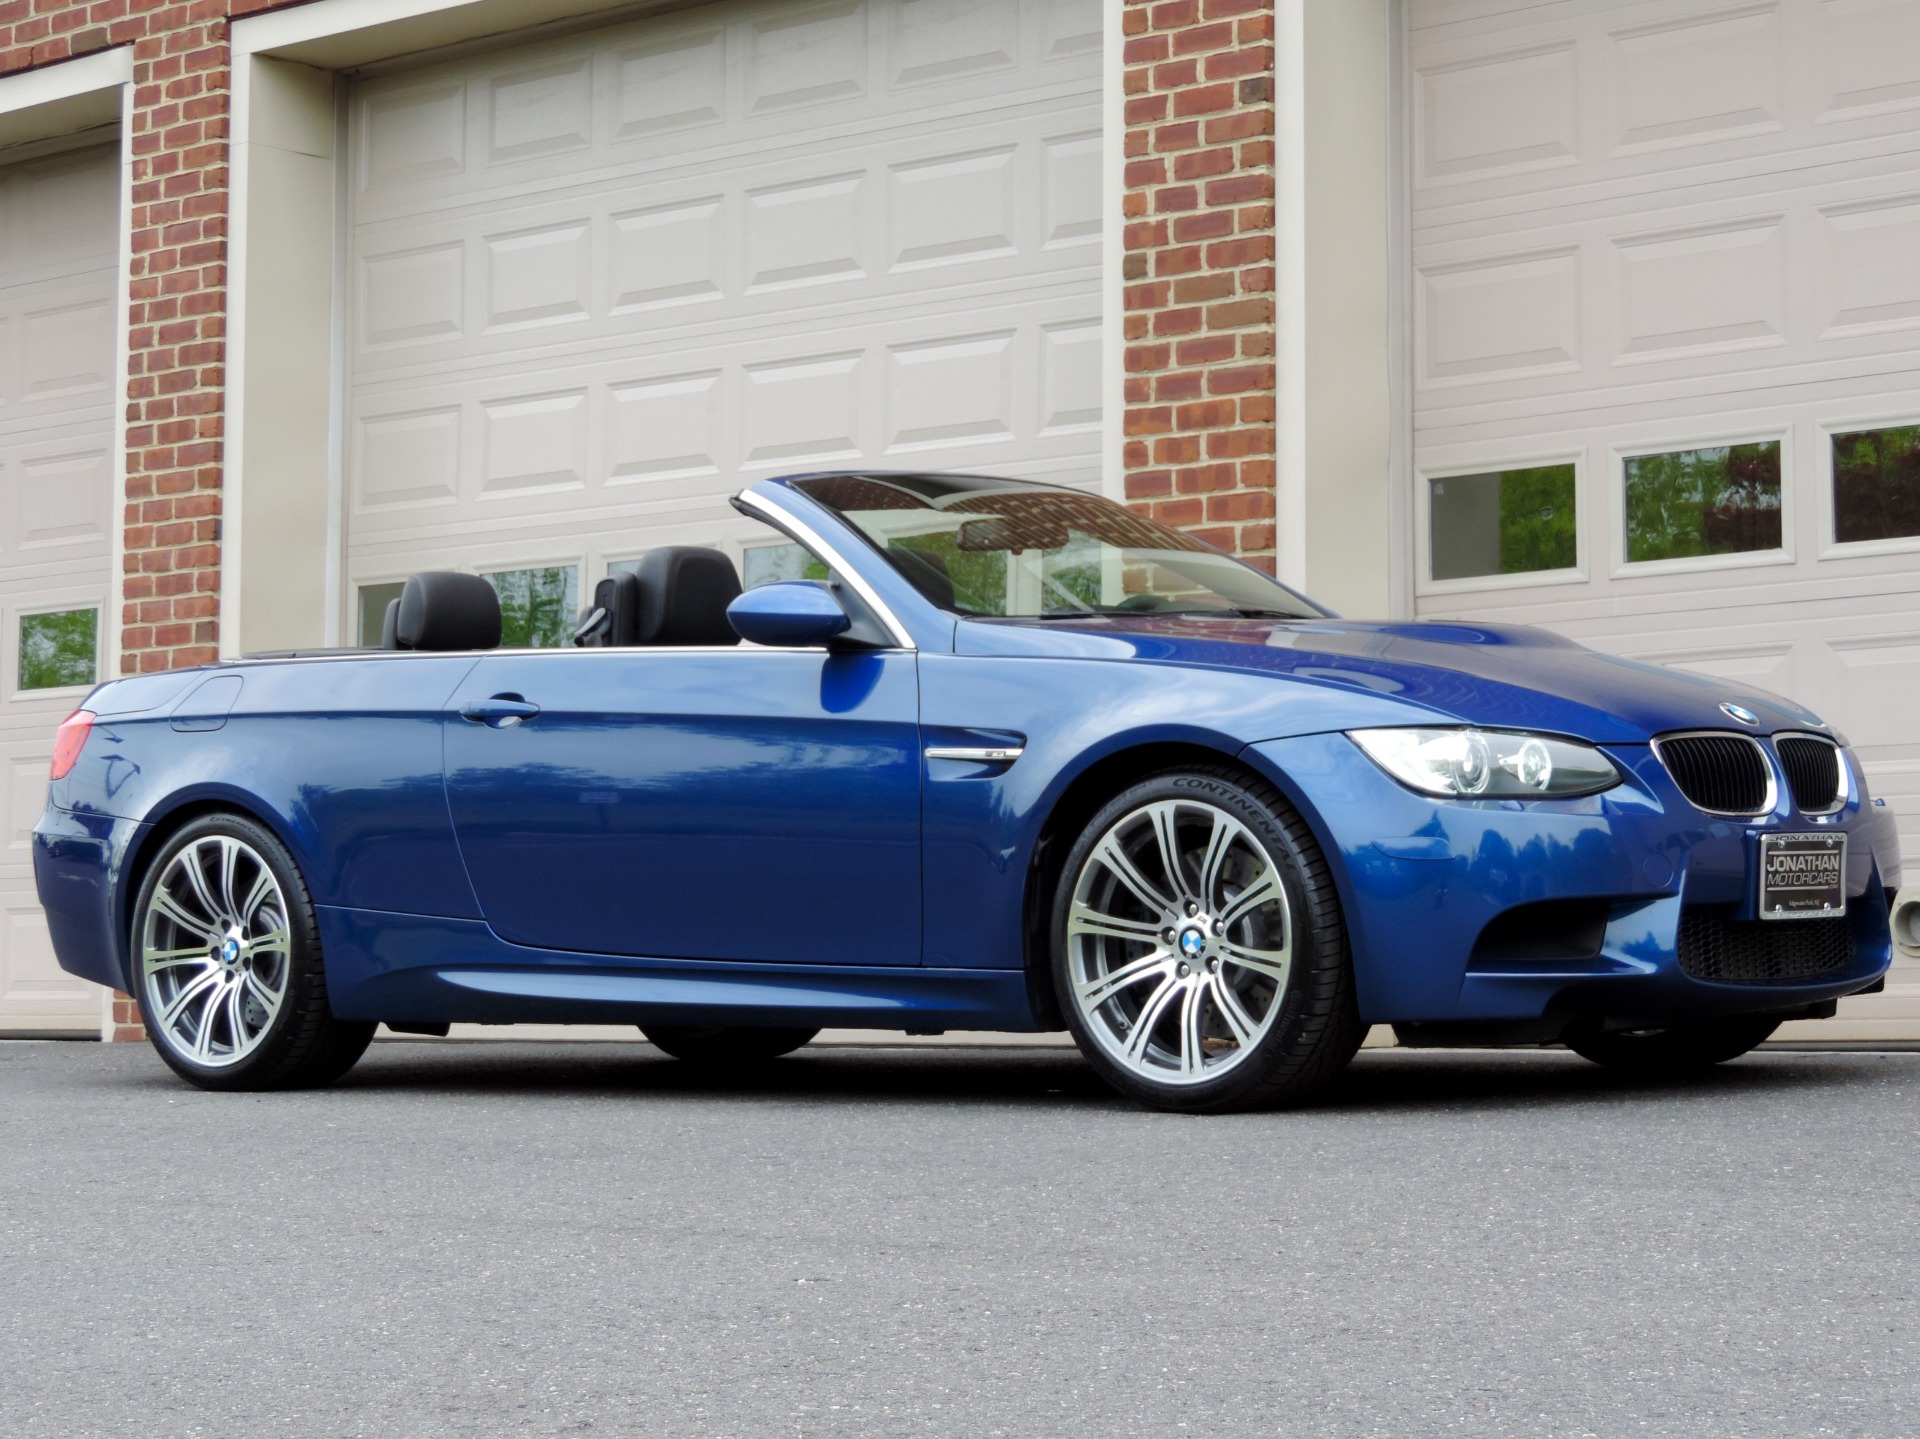 2011 bmw m3 convertible stock 584240 for sale near edgewater park nj nj bmw dealer. Black Bedroom Furniture Sets. Home Design Ideas